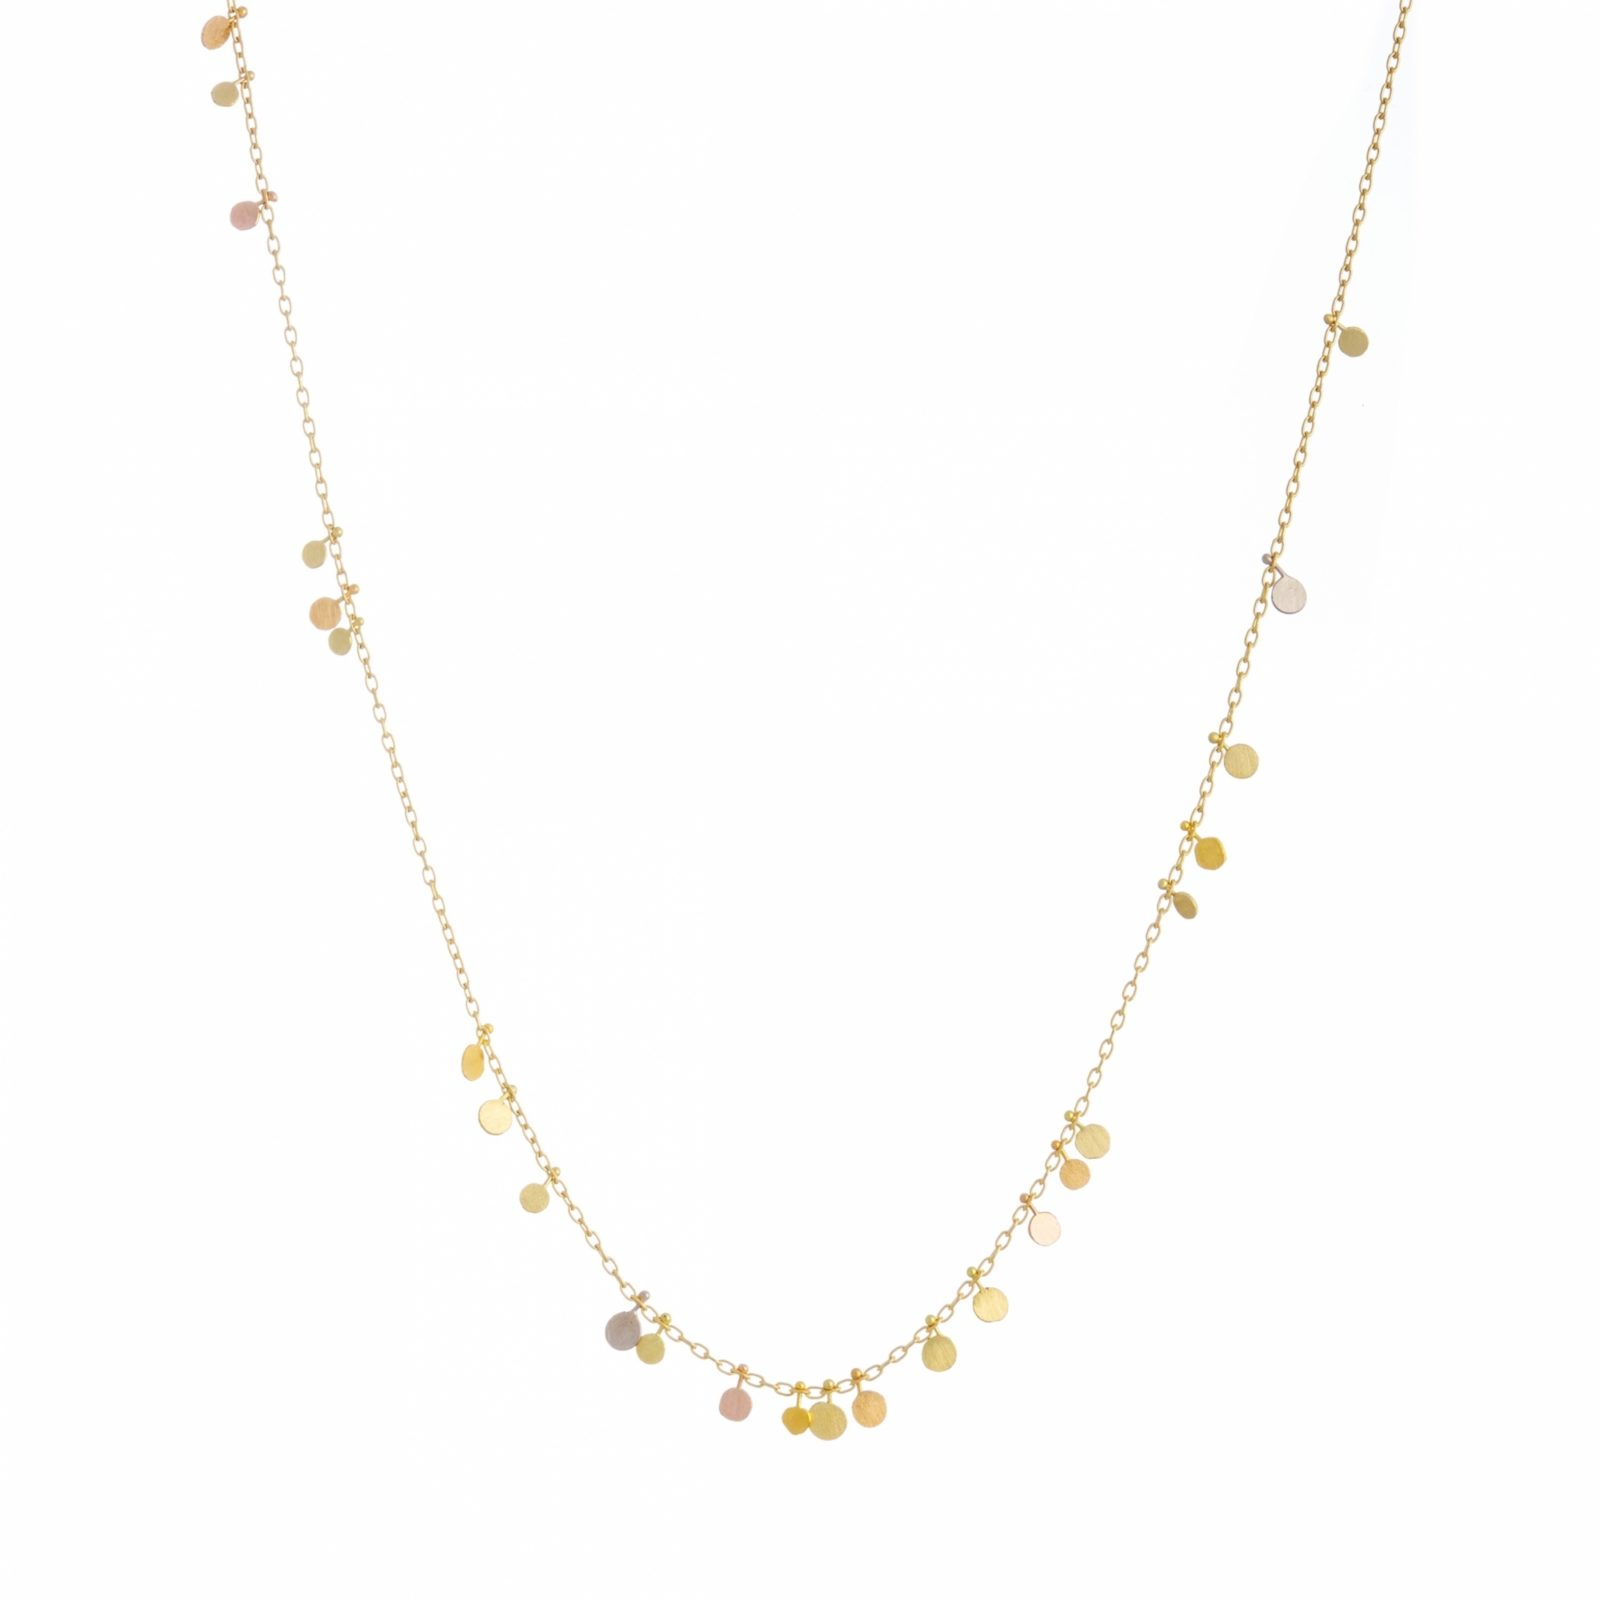 Sia Taylor DN220 YRAIN Rainbow Gold Random Dots Necklace WB